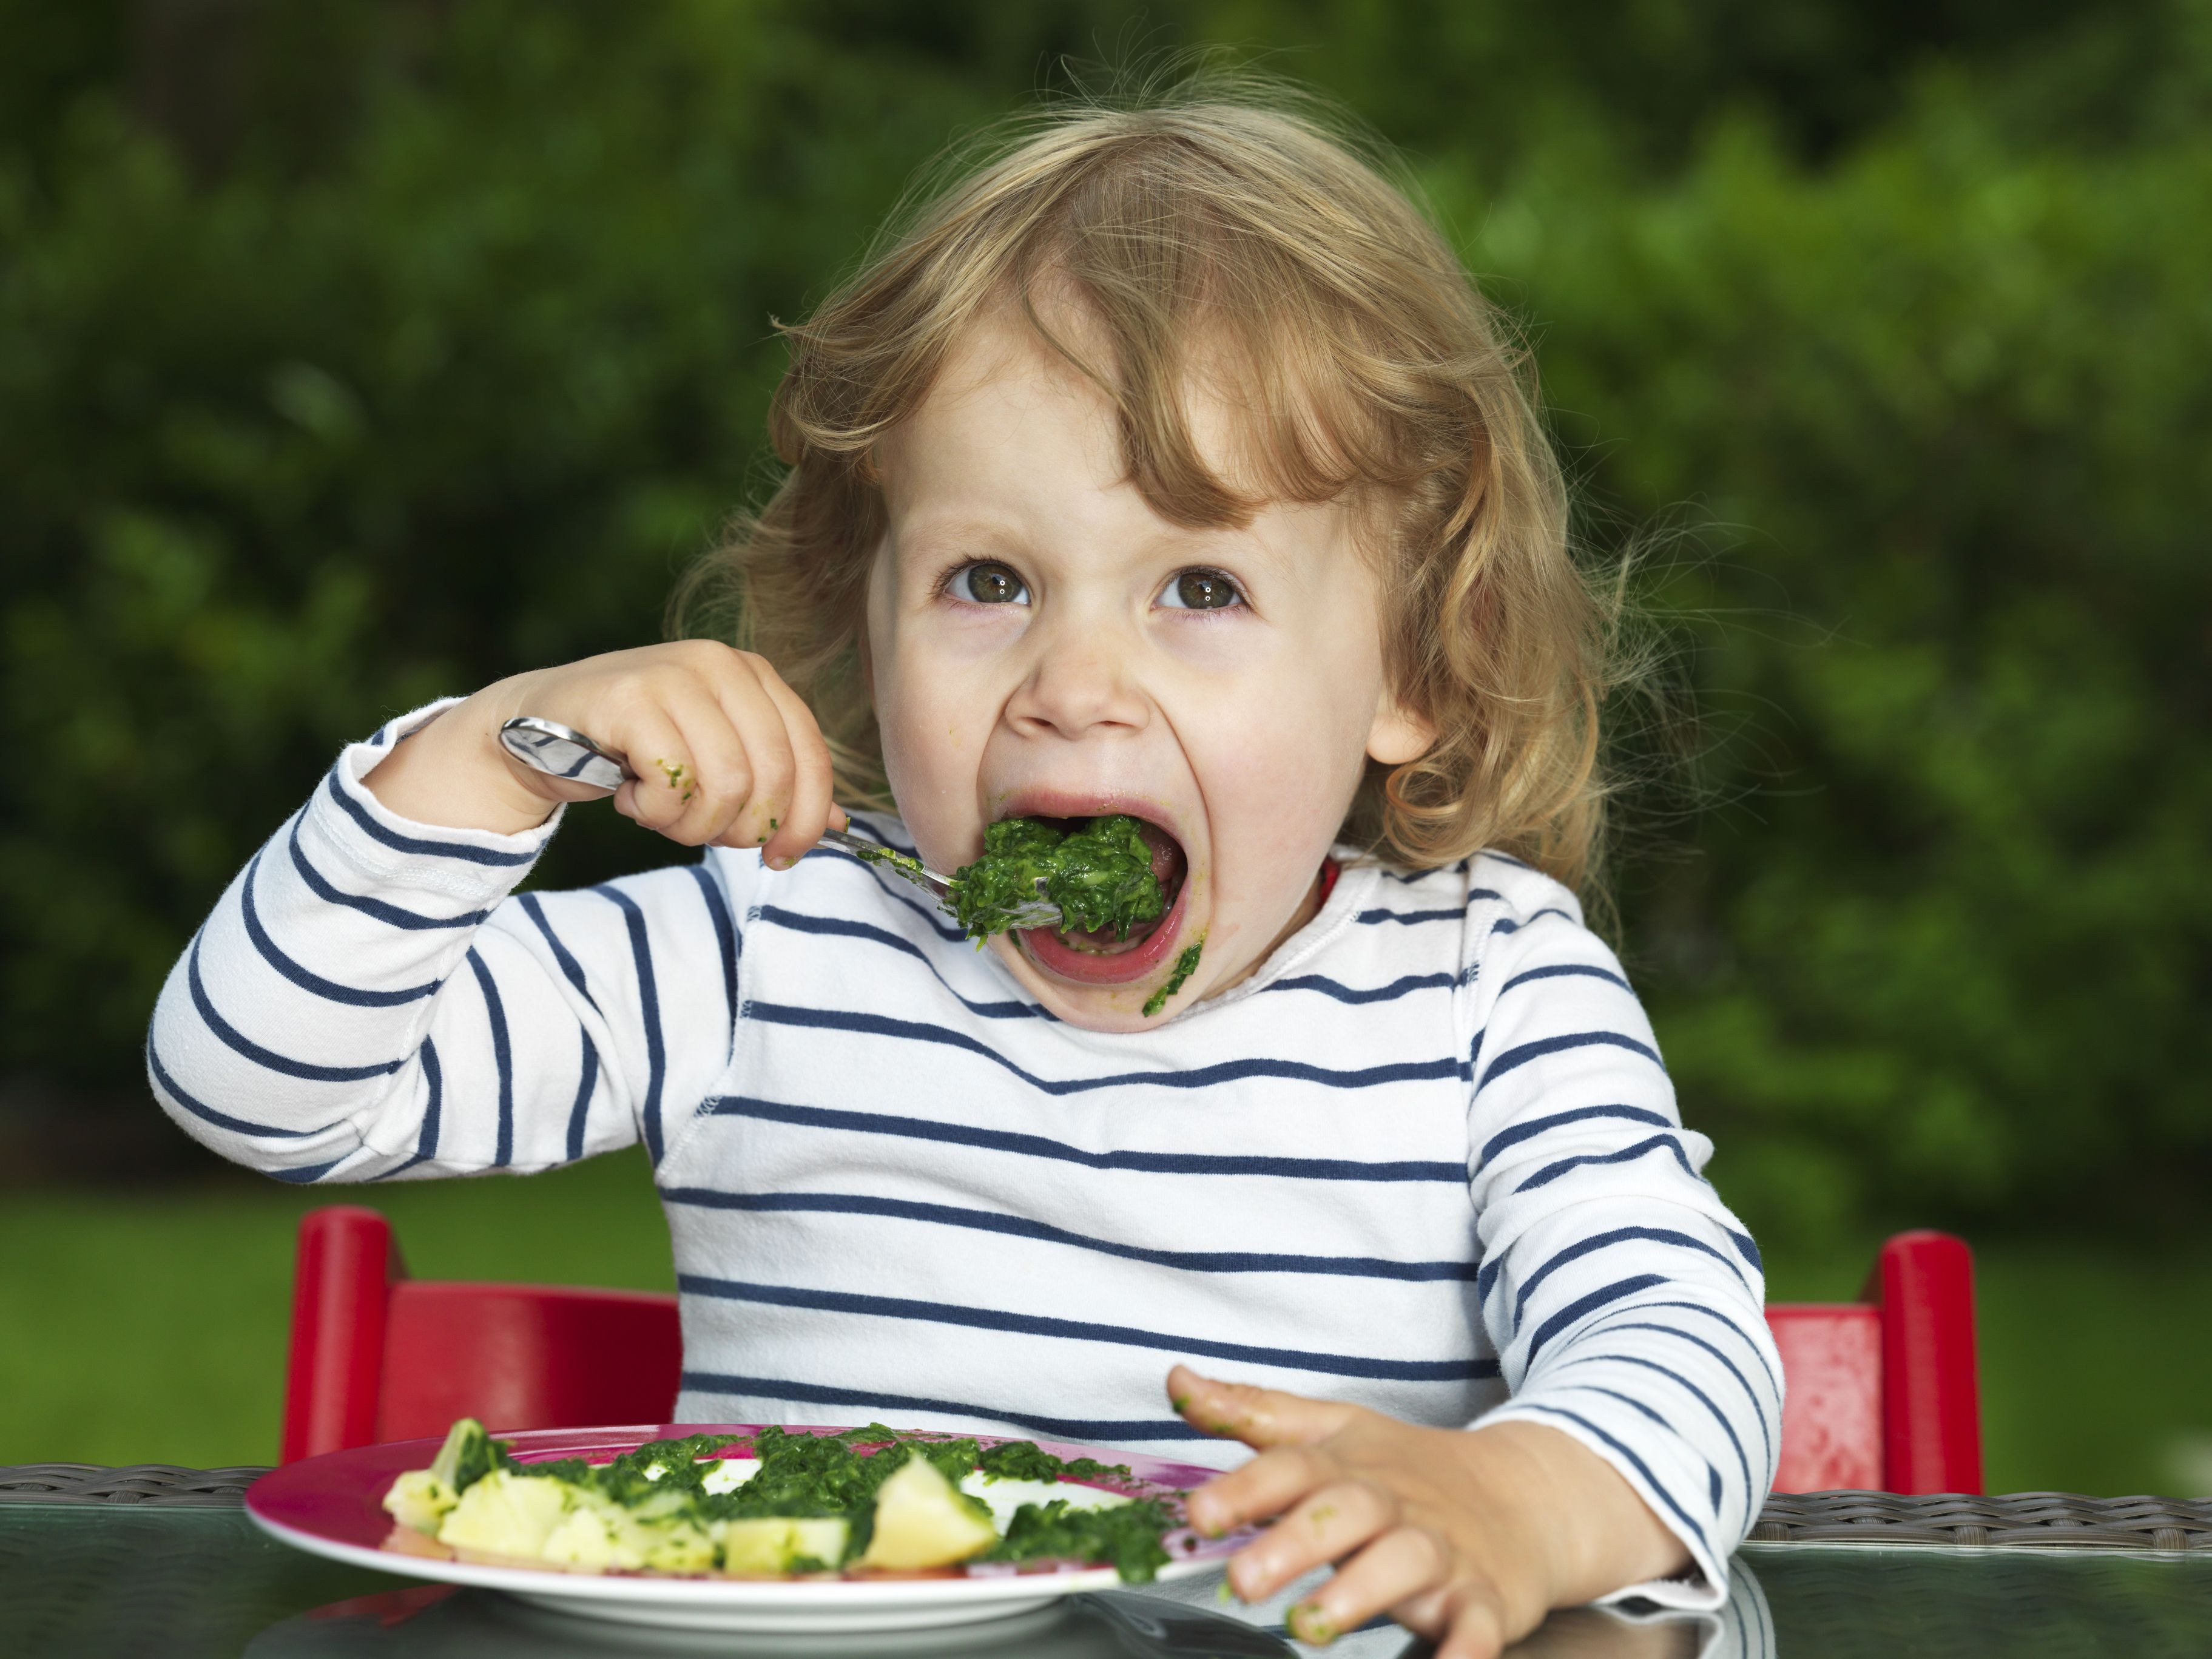 Toddlers need about one cup of vegetables per day.